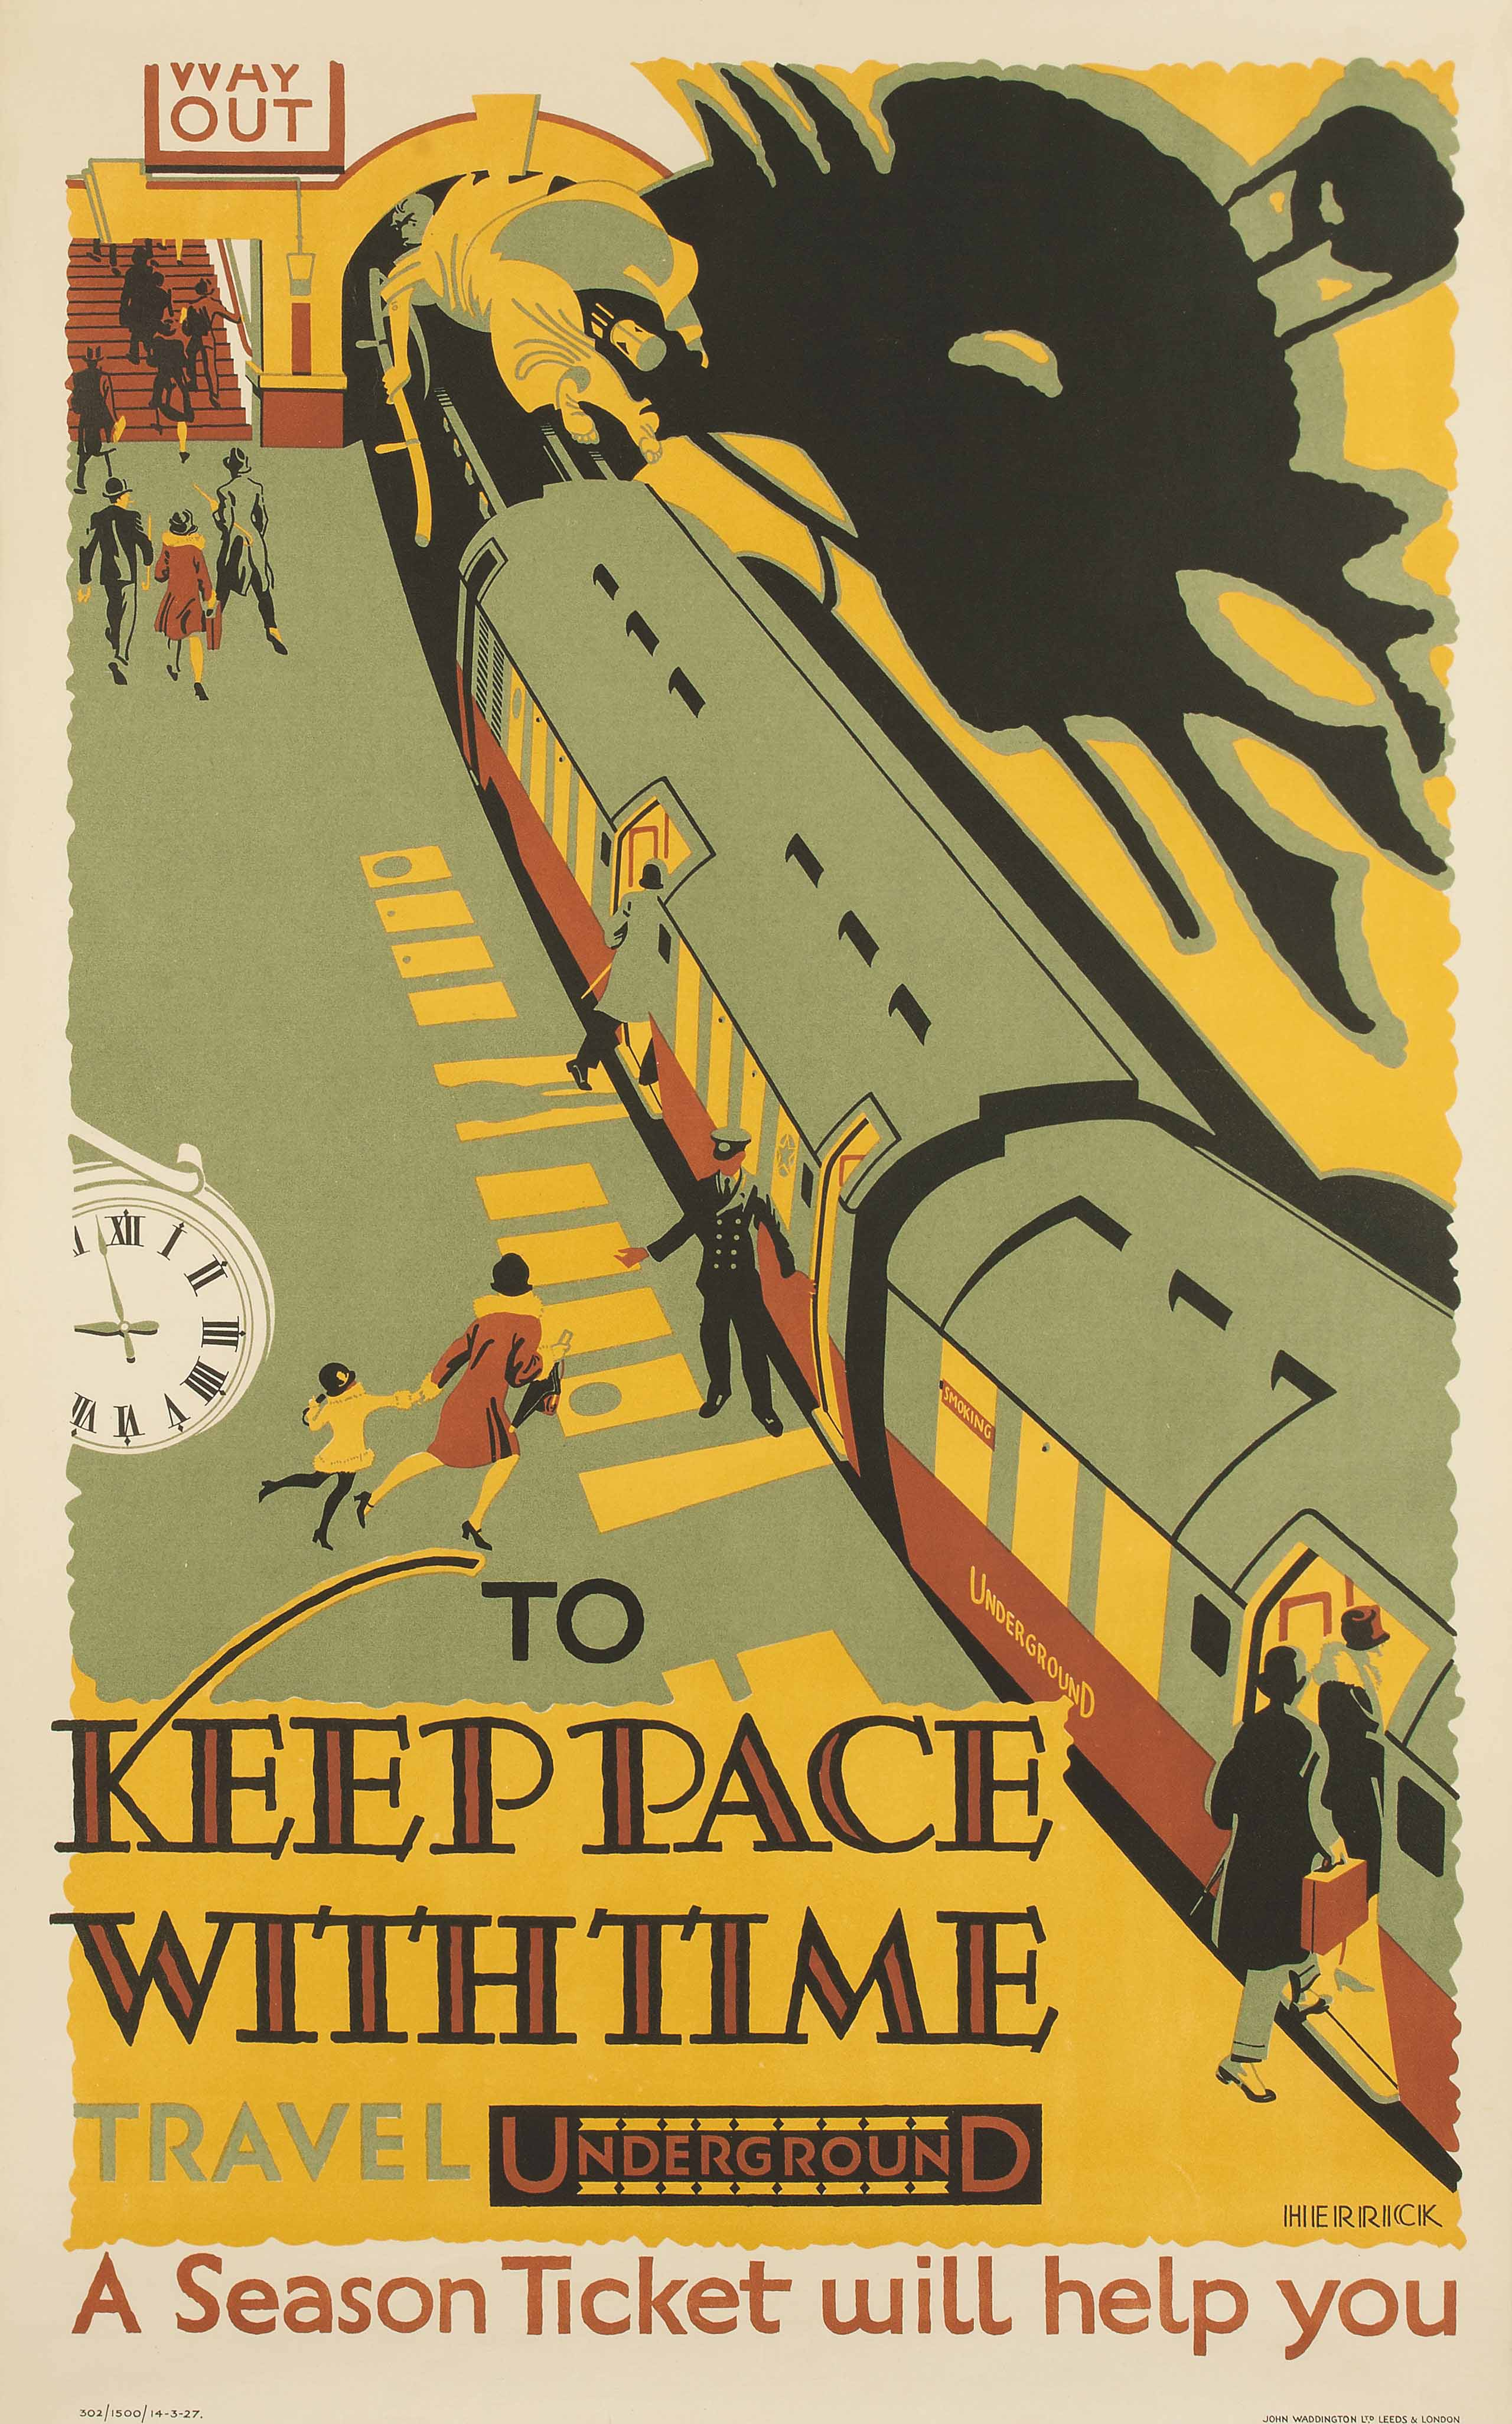 TO KEEP PACE WITH TIME